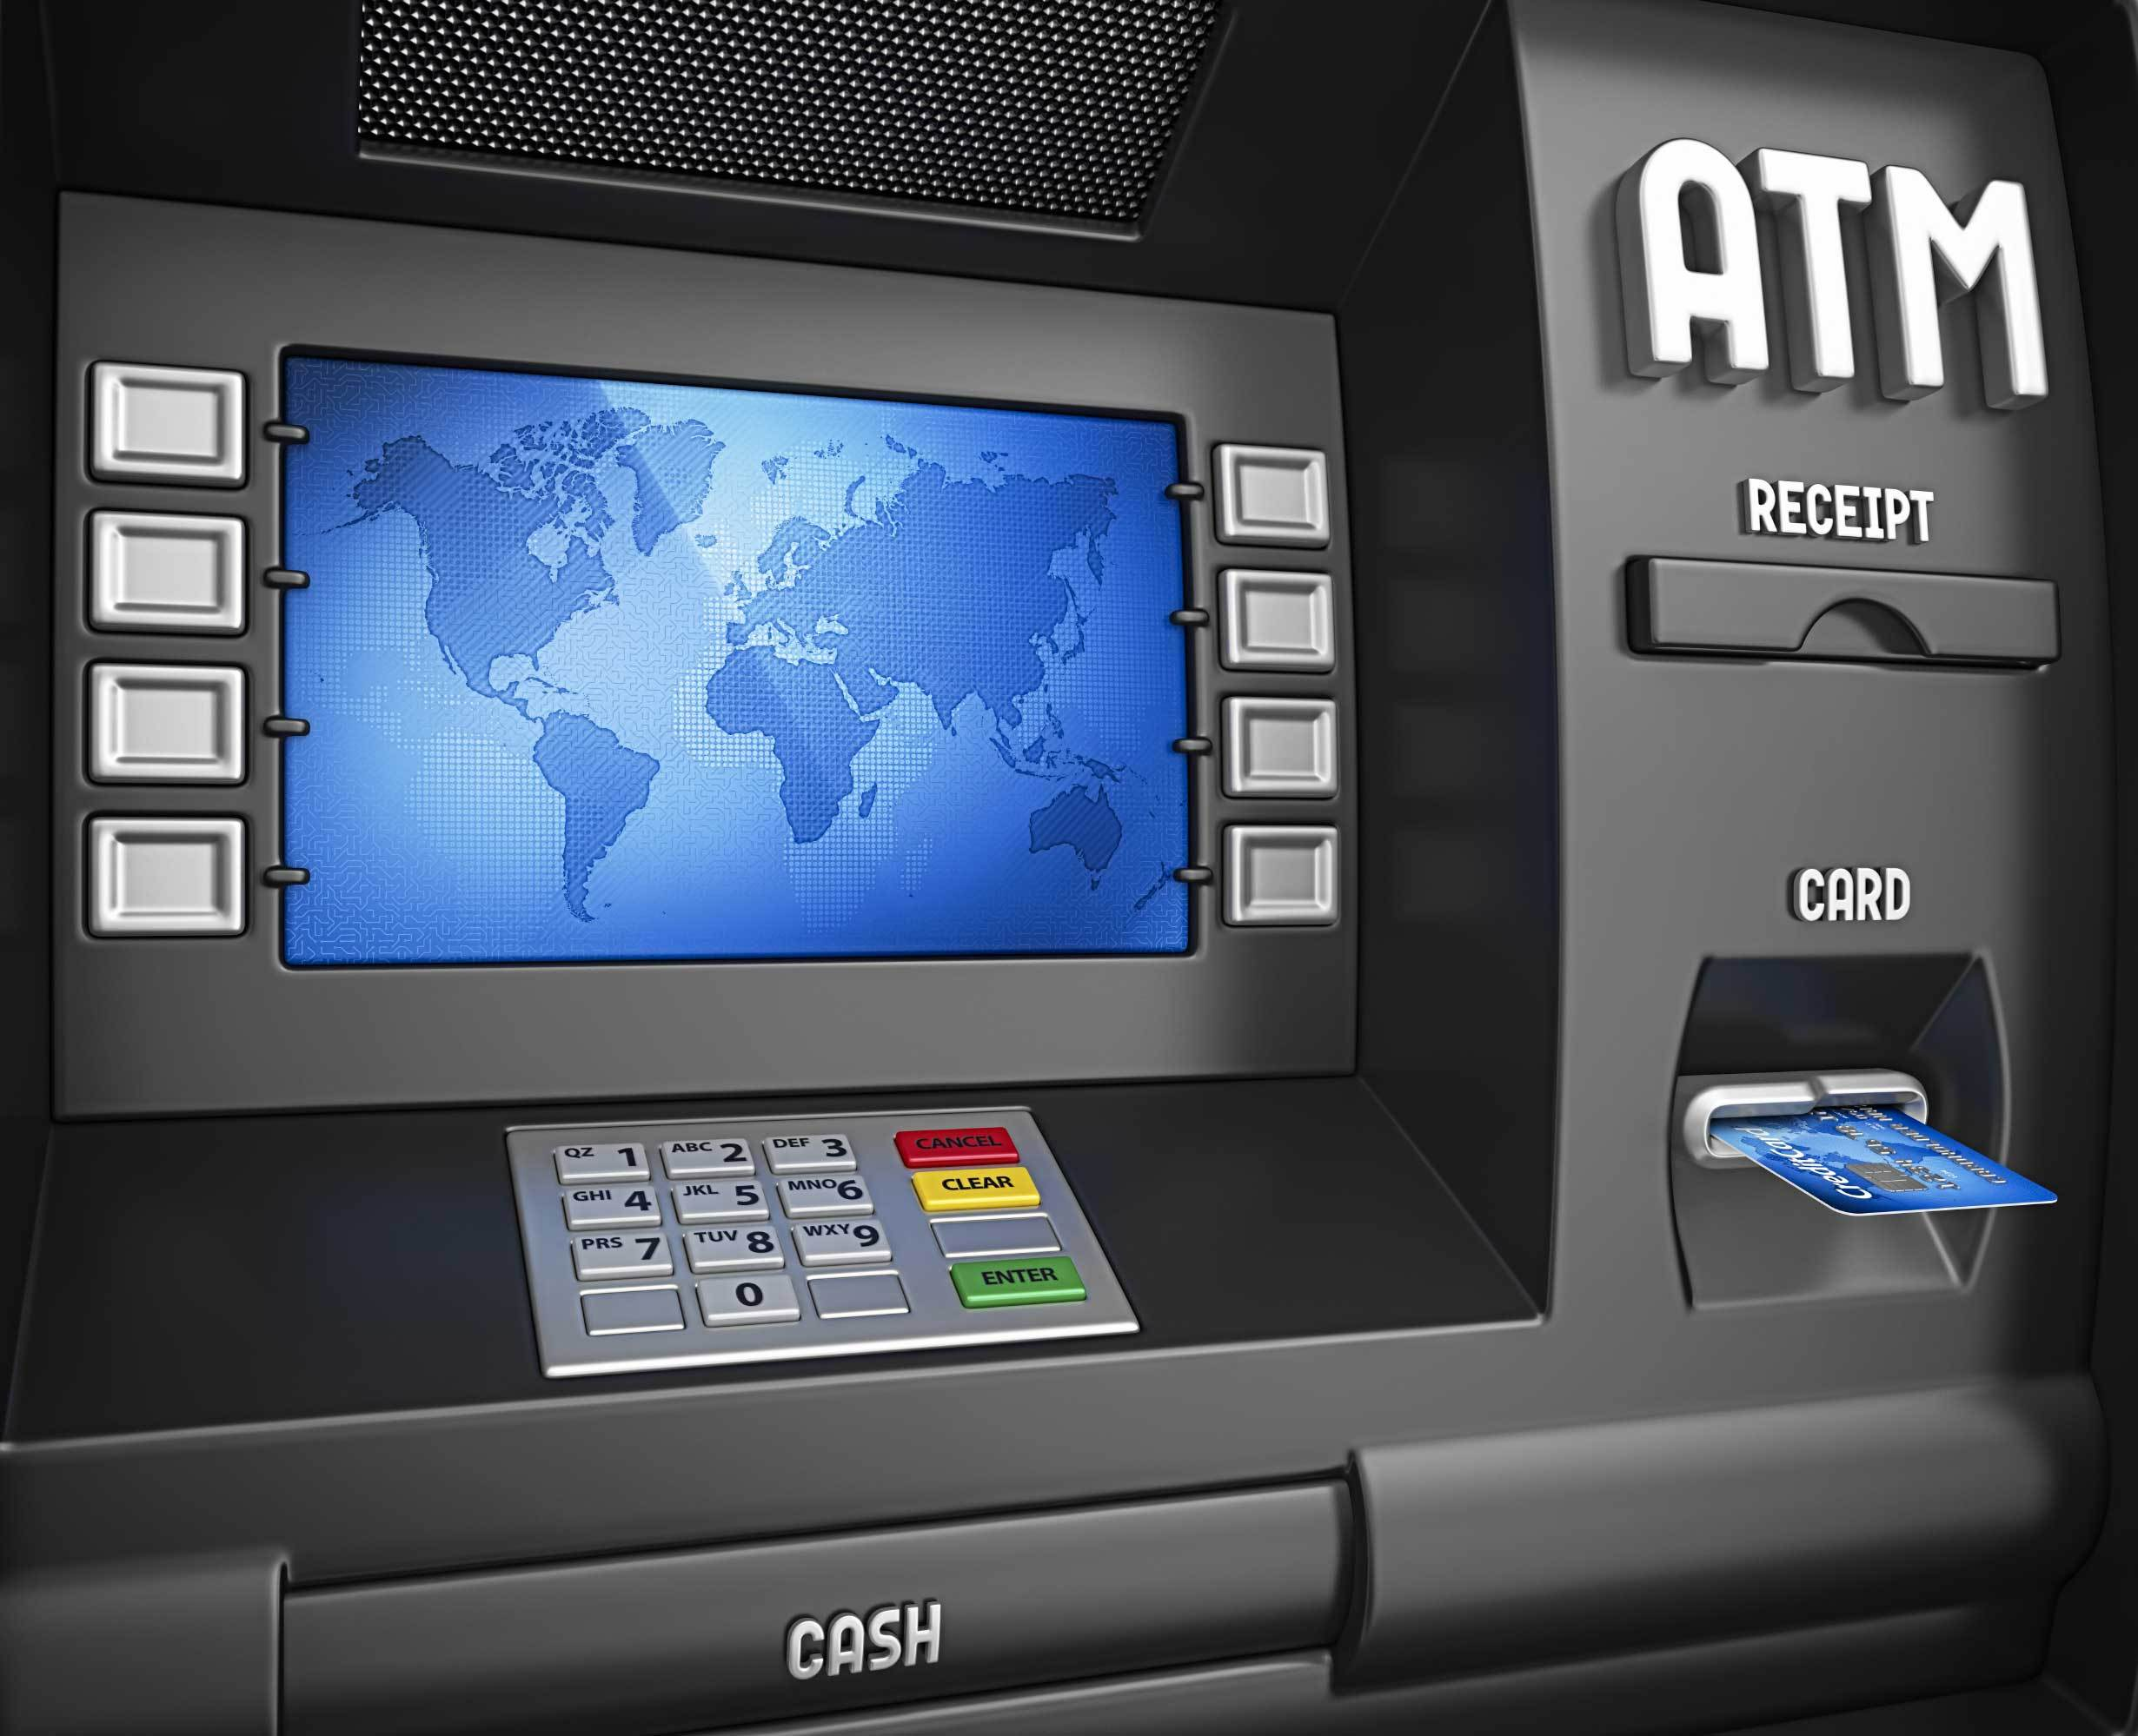 ATM Fraud and how to protecting your money against it